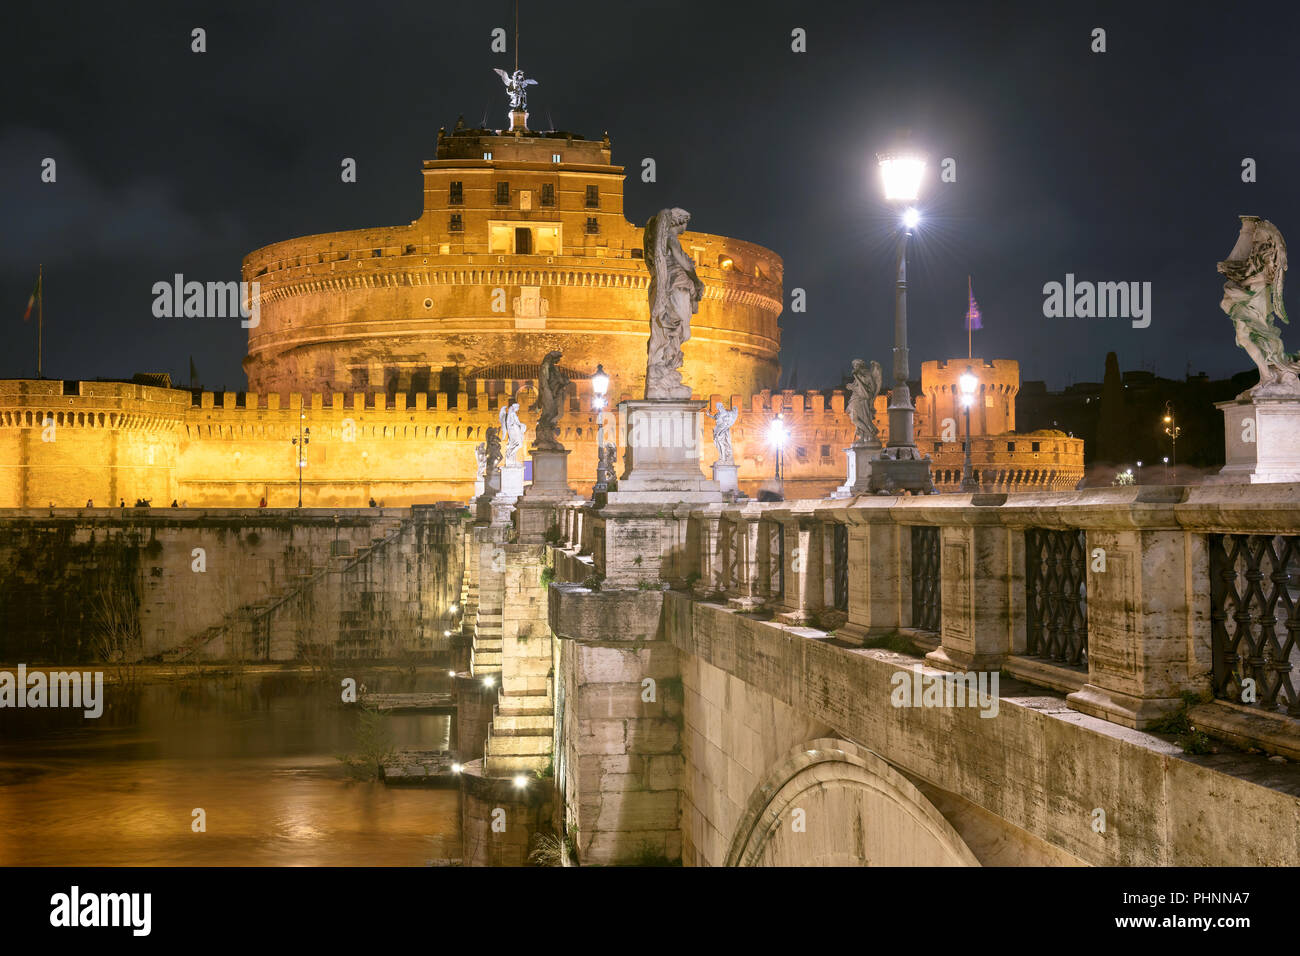 Castel Sant'Angelo at night with the sant angelo bridge. Rome, Italy. - Stock Image